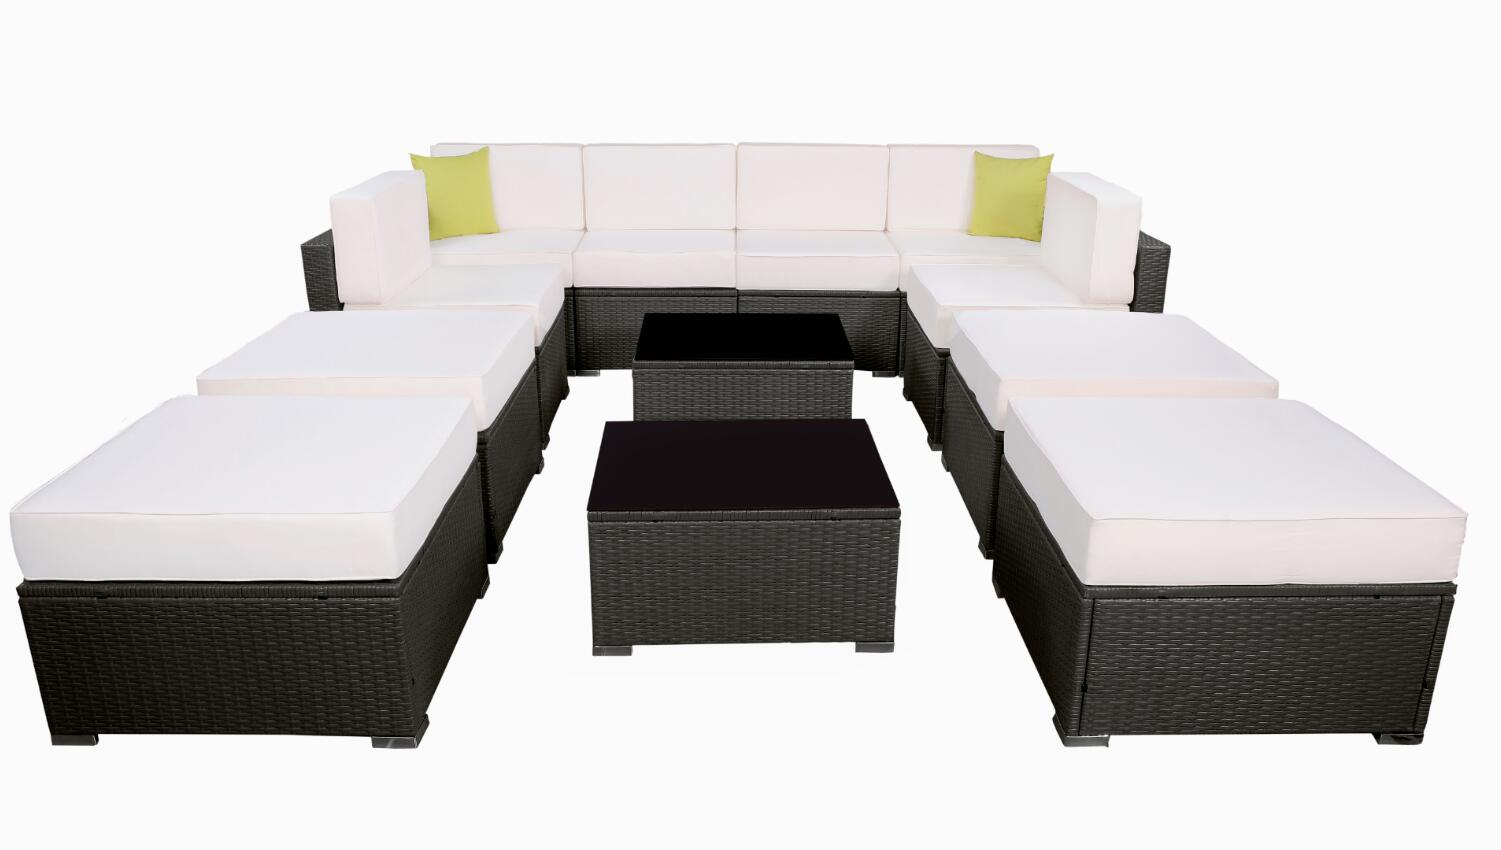 MCombo 6082 12PC Bigger Size Outdoor Furniture Luxury Patio With Black  Wicker And Creme White Cushion